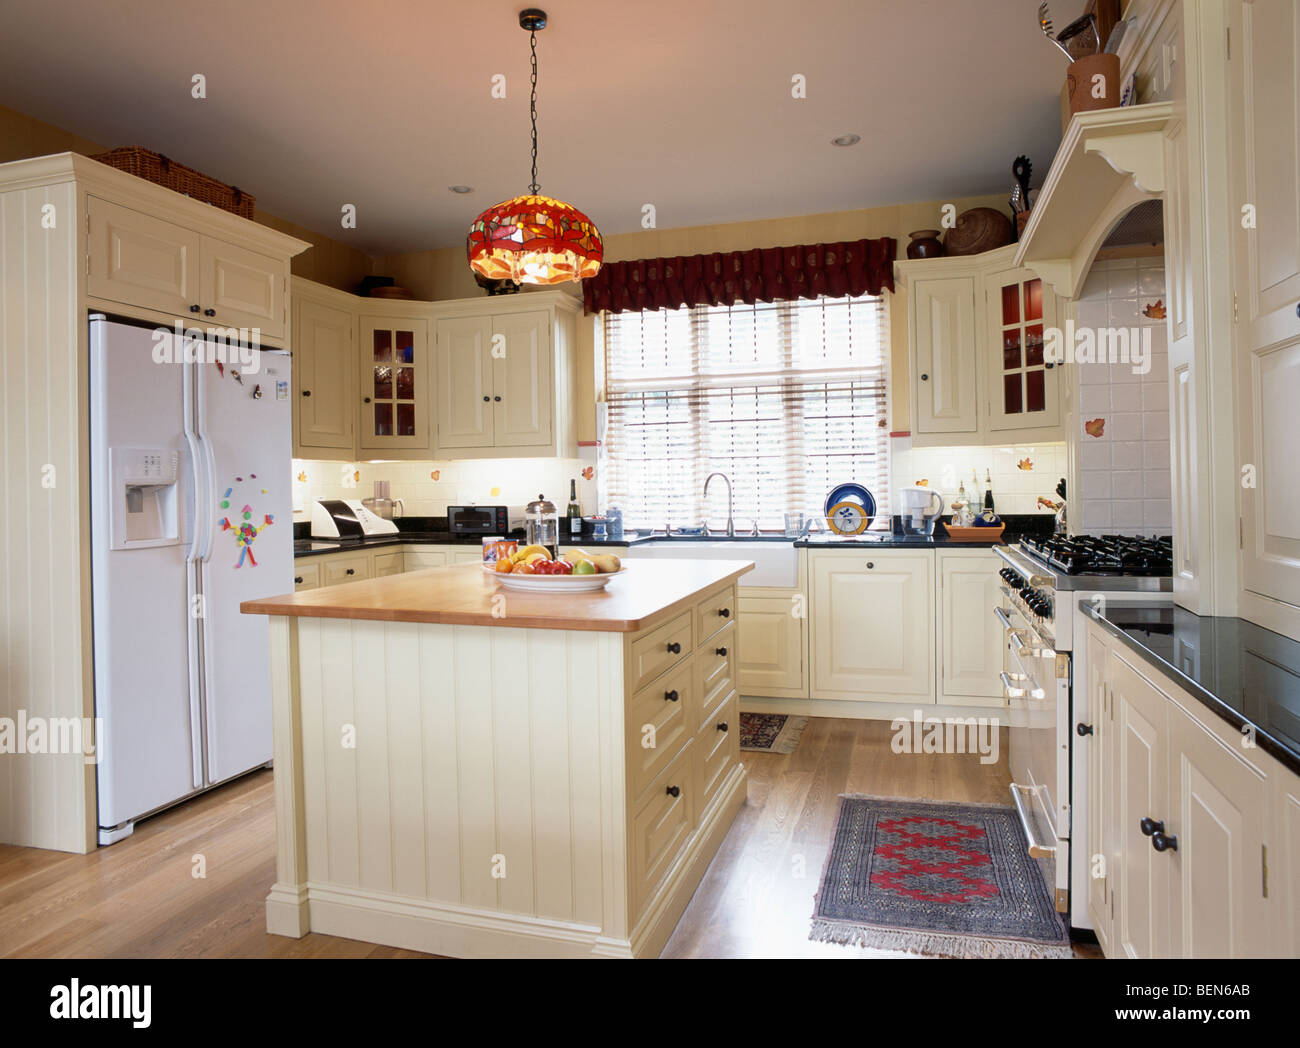 cream kitchen island cream island unit and fitted cupboards in country kitchen with large stock photo 26281539 alamy 6744